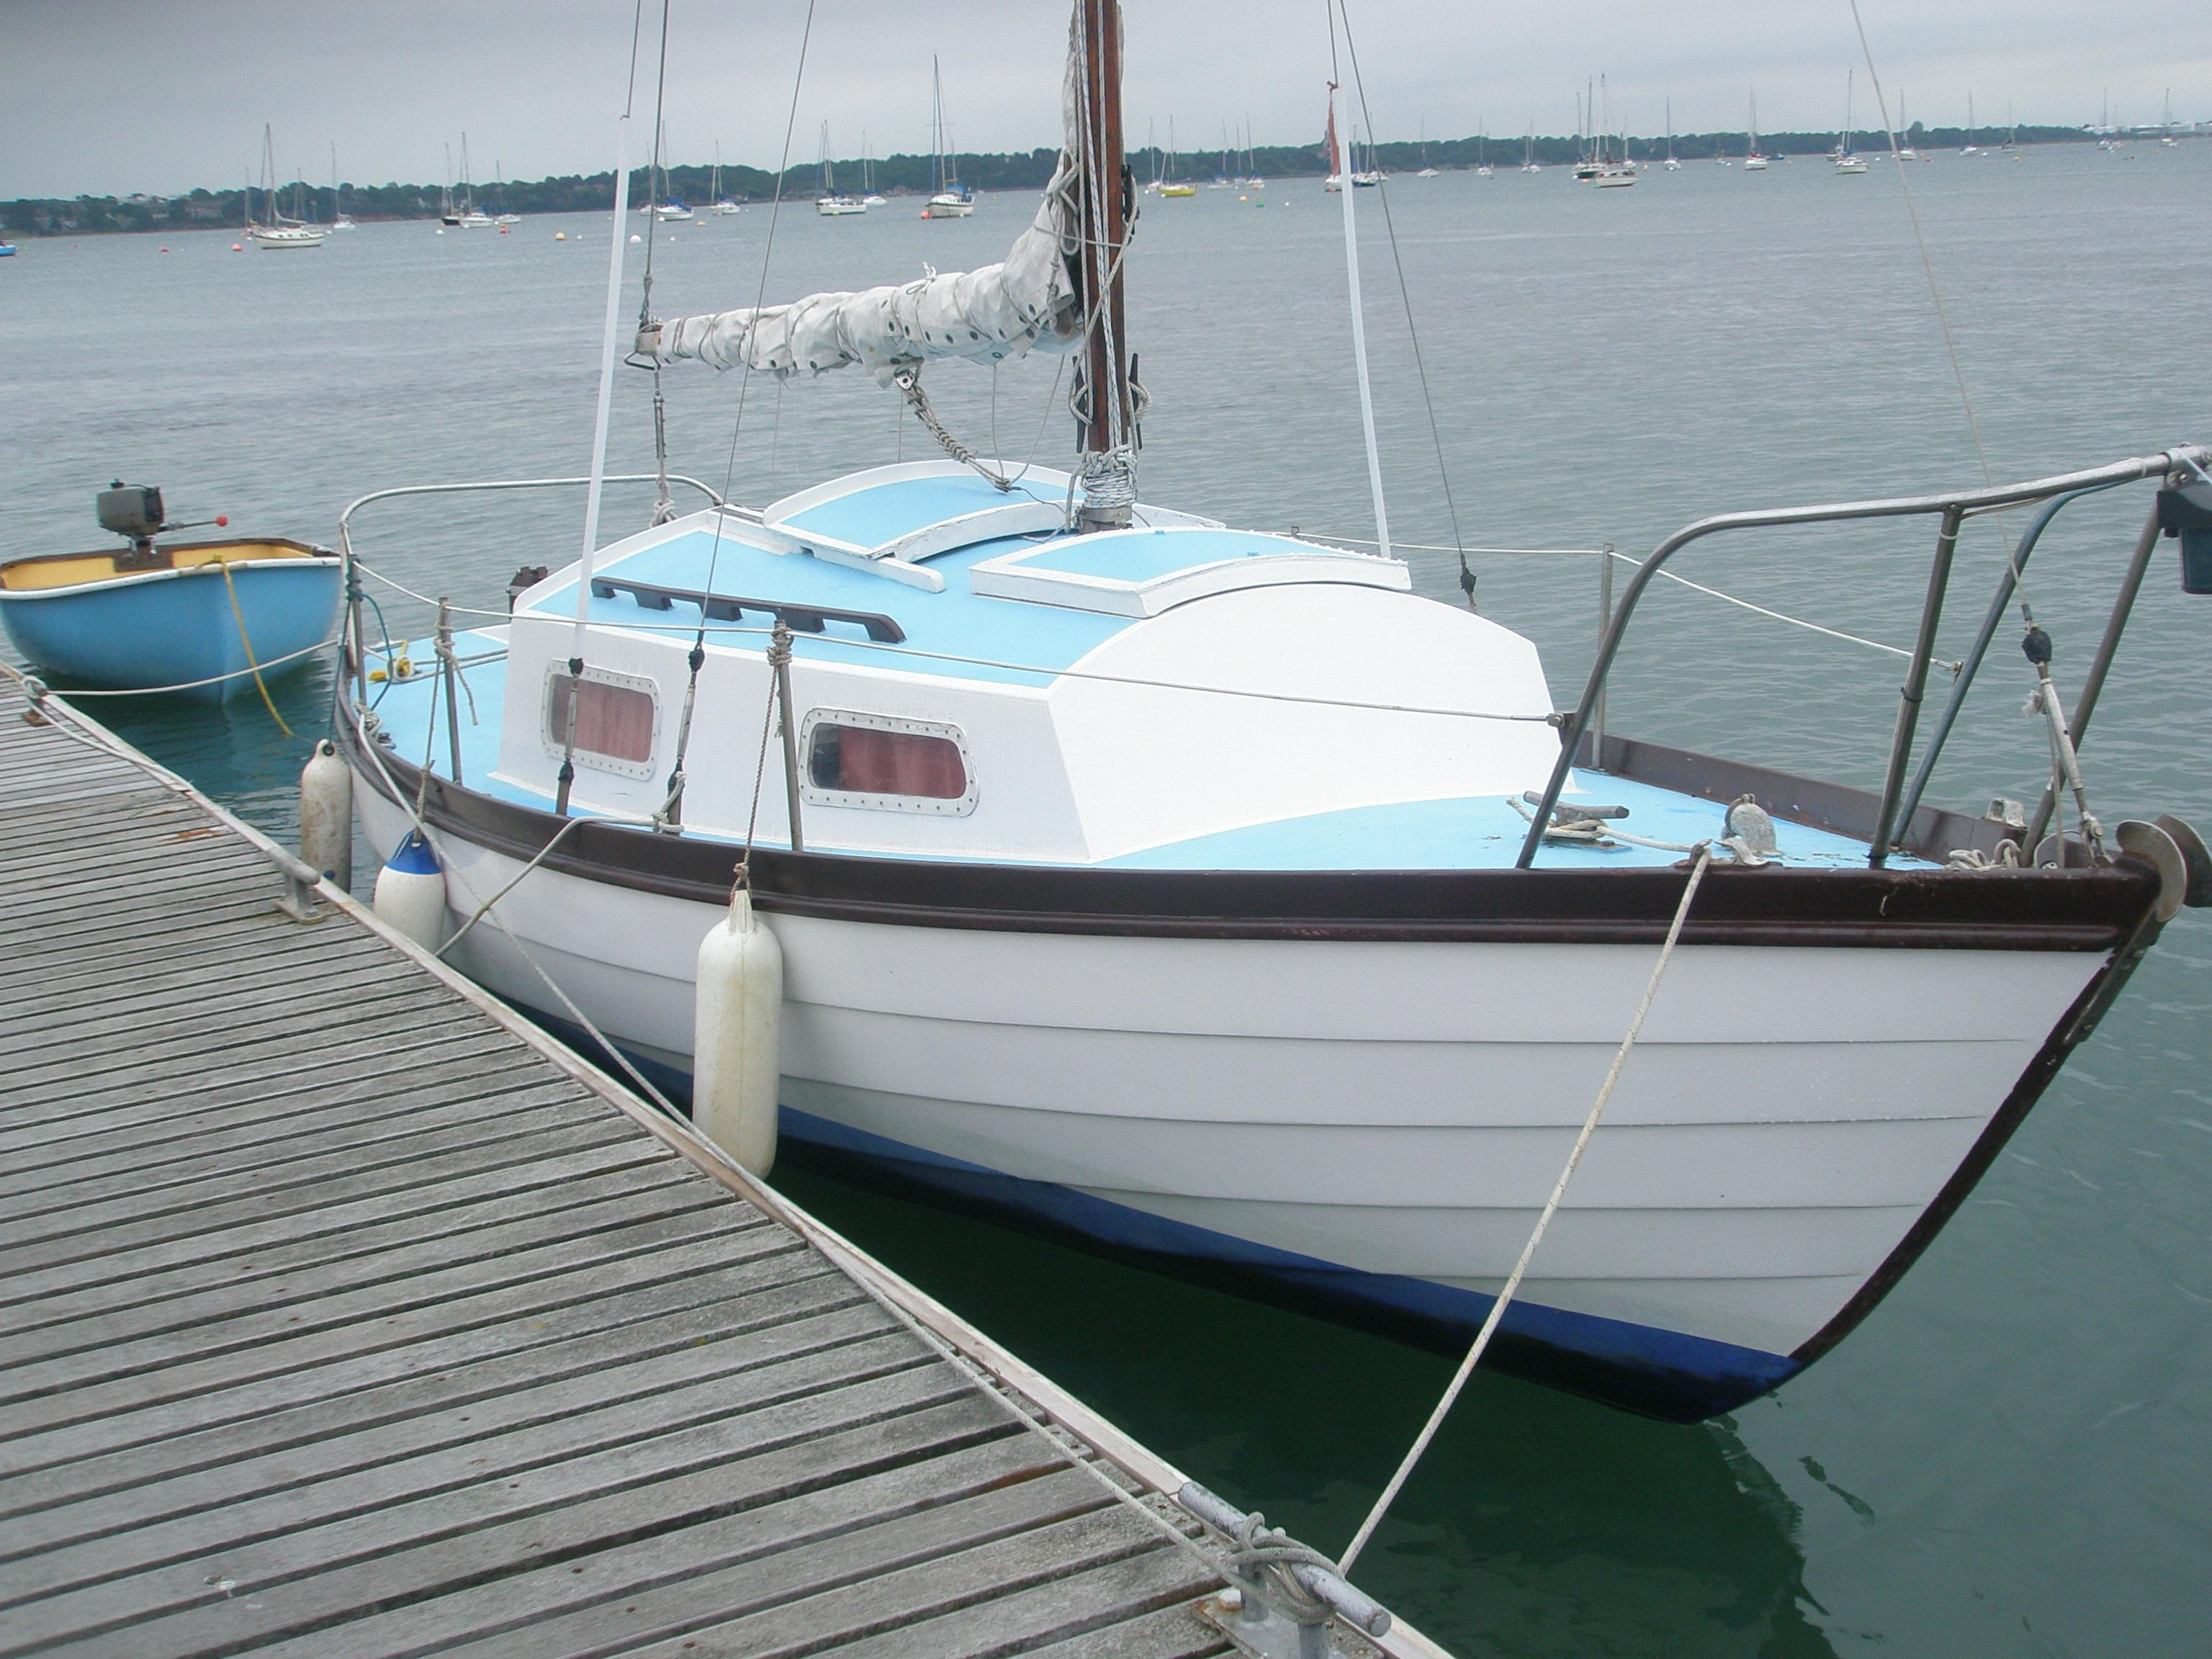 Beaulieu United Kingdom  city photos : 1985 Waarschip 23 Sail Boat For Sale www.yachtworld.com